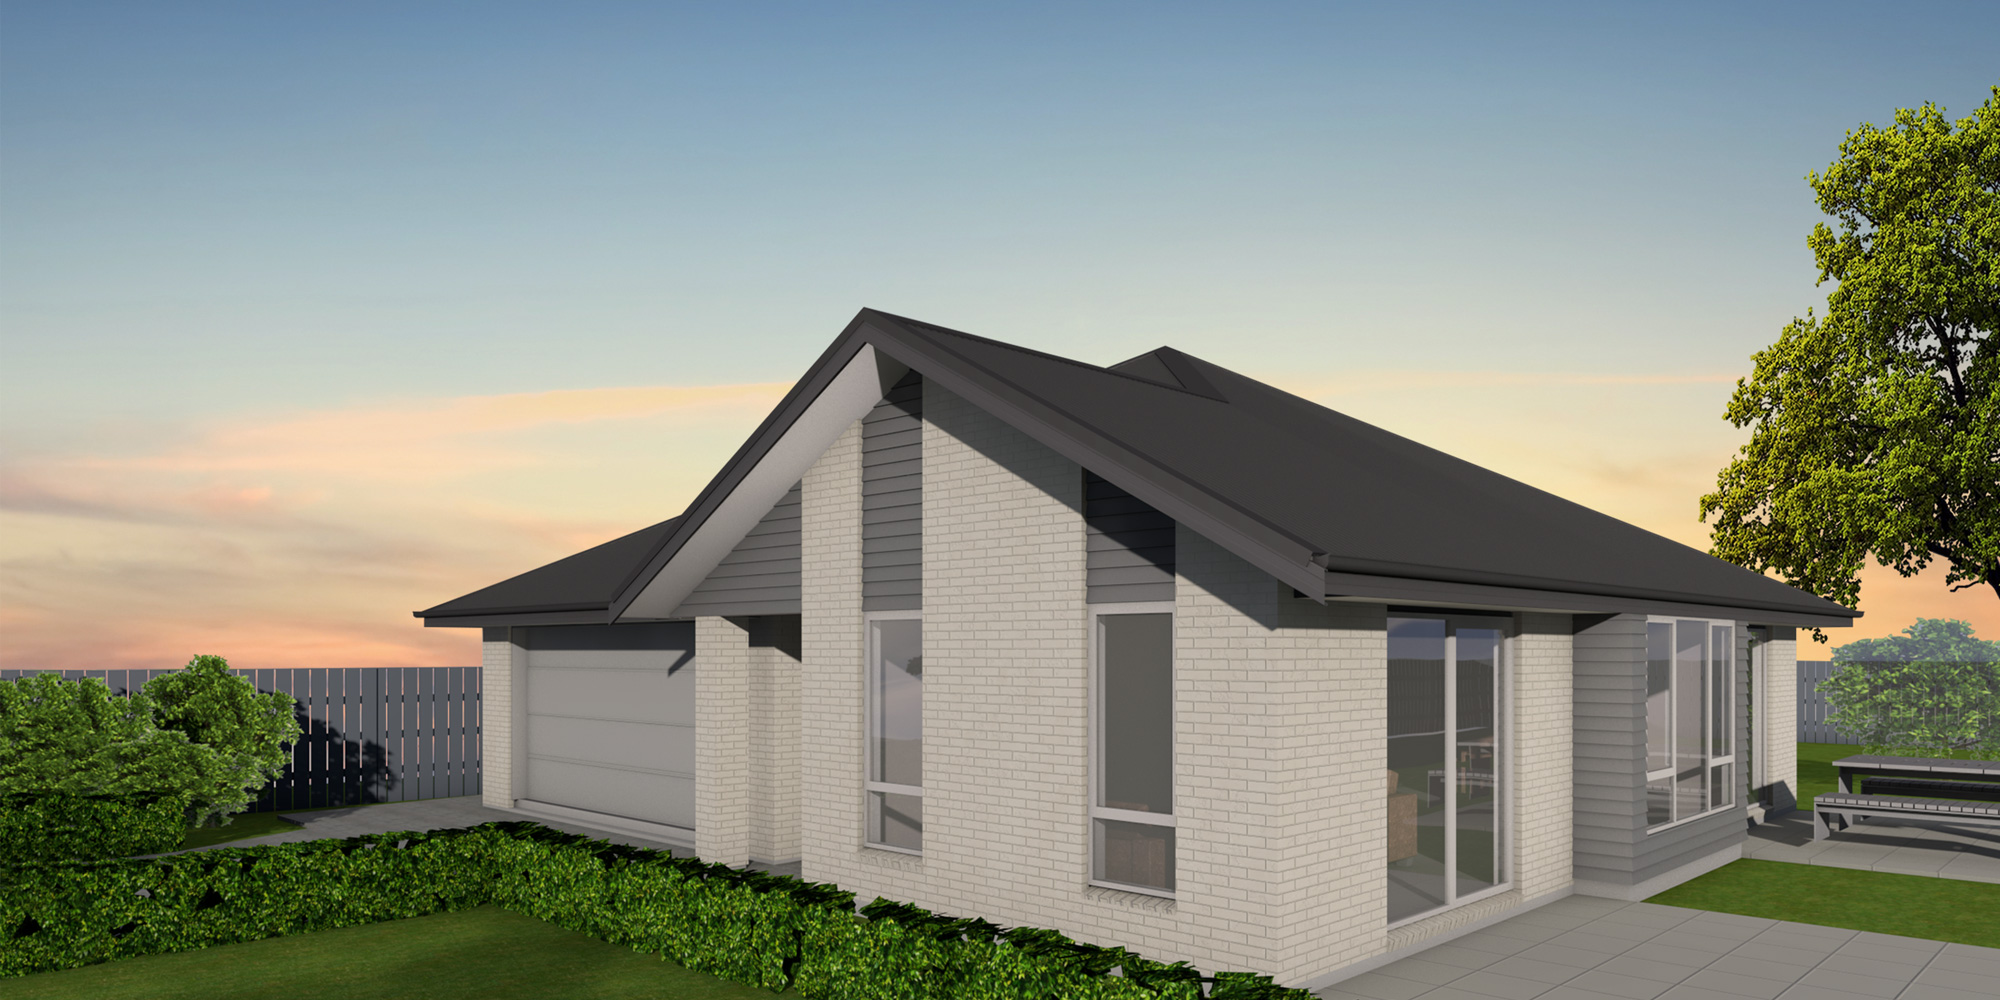 - The Tasman's living space is open and generous featuring a central entertainers kitchen and walk in pantry.